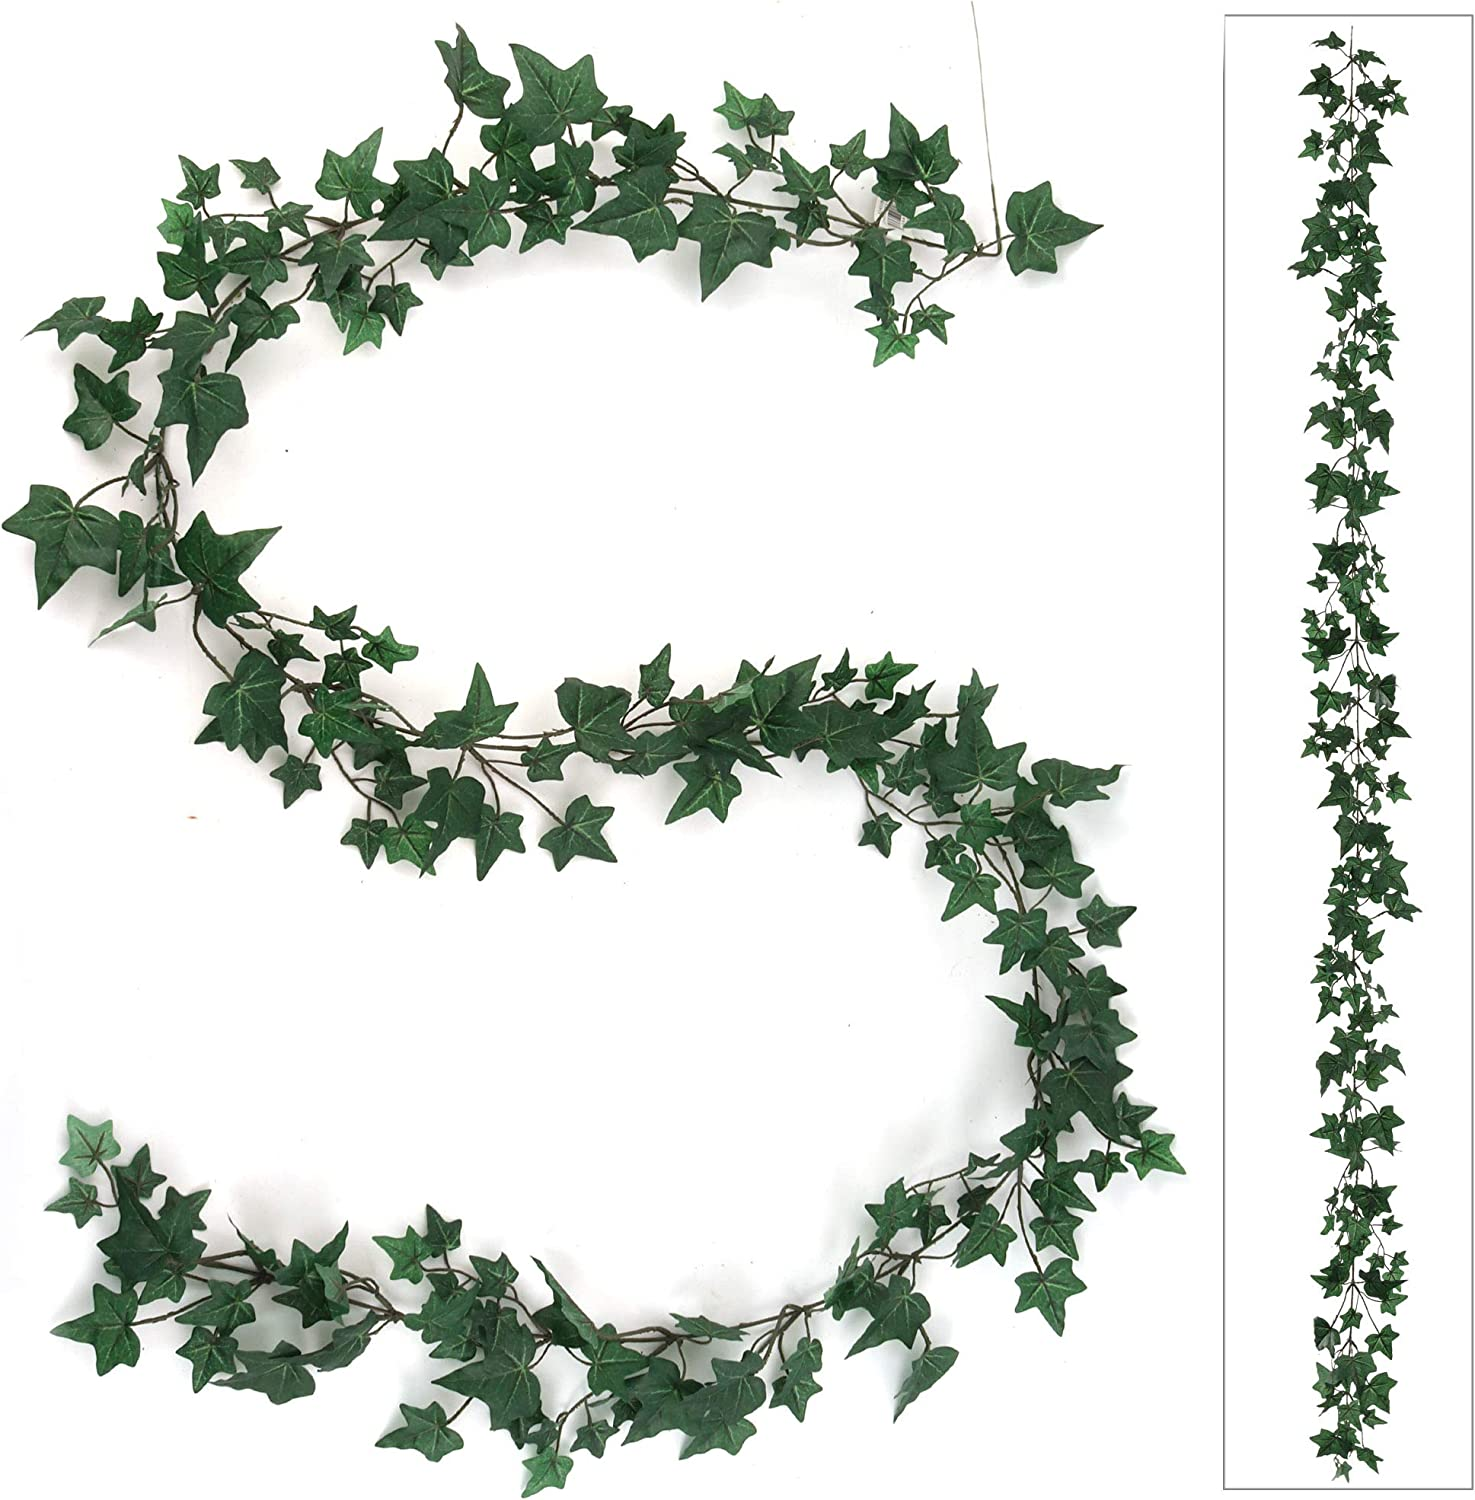 Larksilk Green Uv Resistant English Ivy Garland 6ft Variegated Ivy Leaves Artificial Hanging Vine Plant Bedroom Event Wedding Diy Backdrop Greenery Décor One Piece Home Kitchen